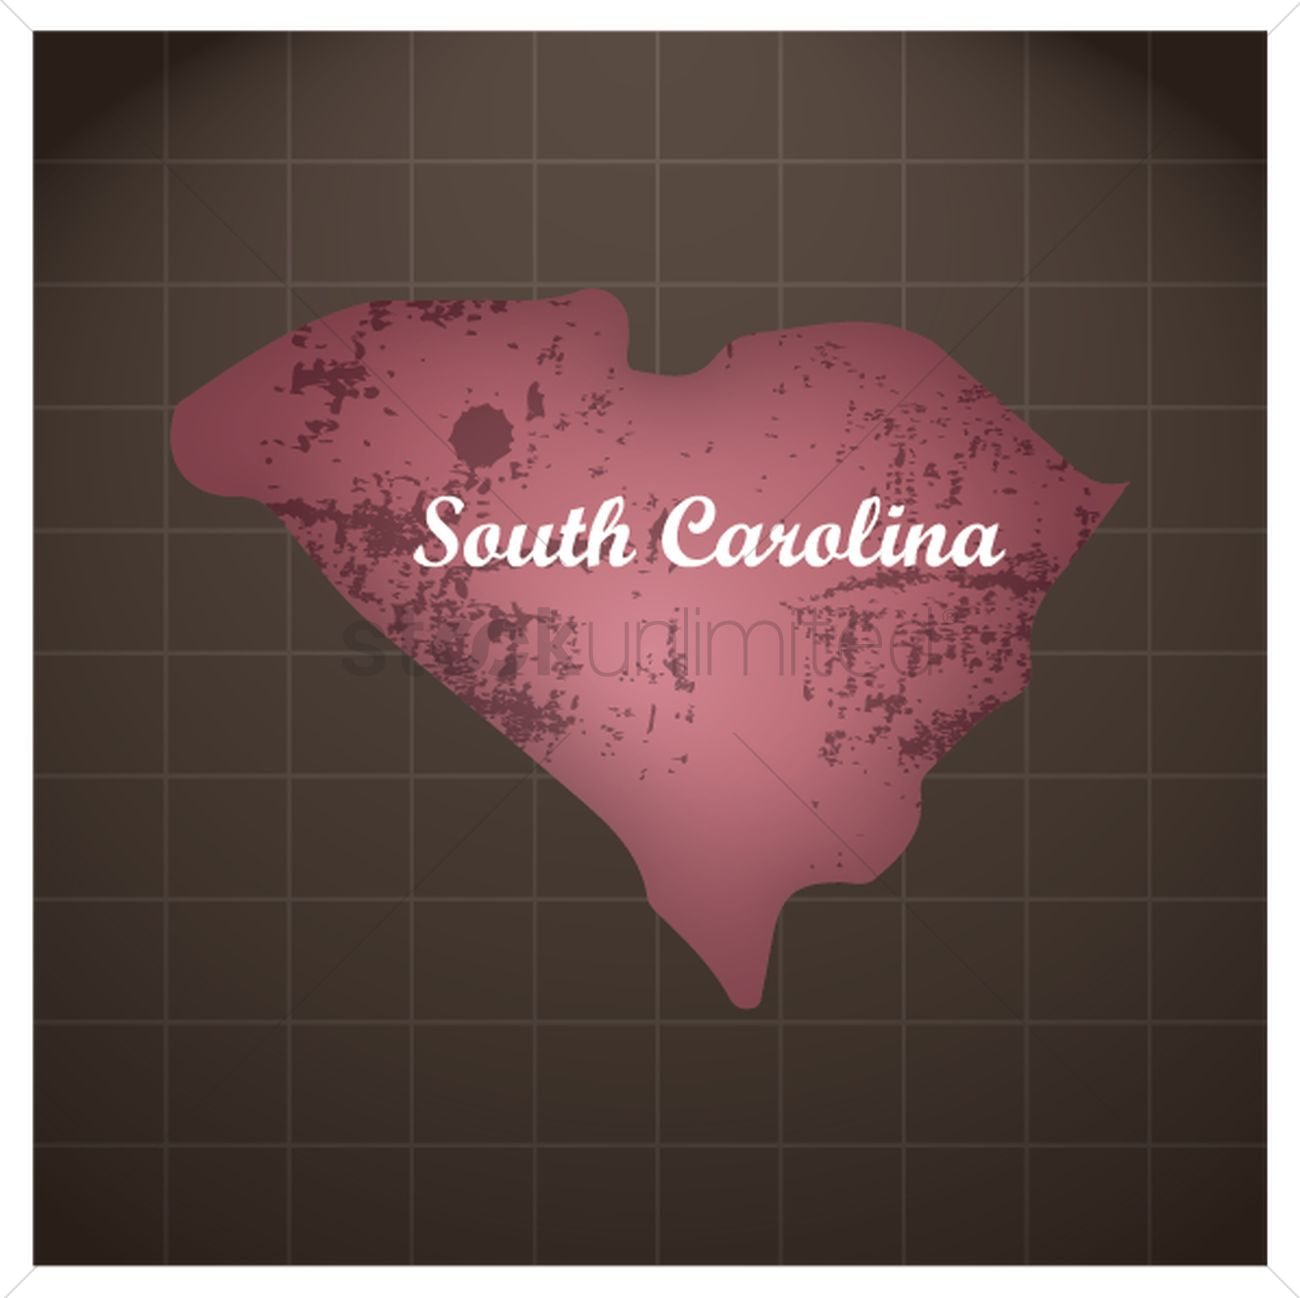 South carolina state map Vector Image - 1591132 | StockUnlimited